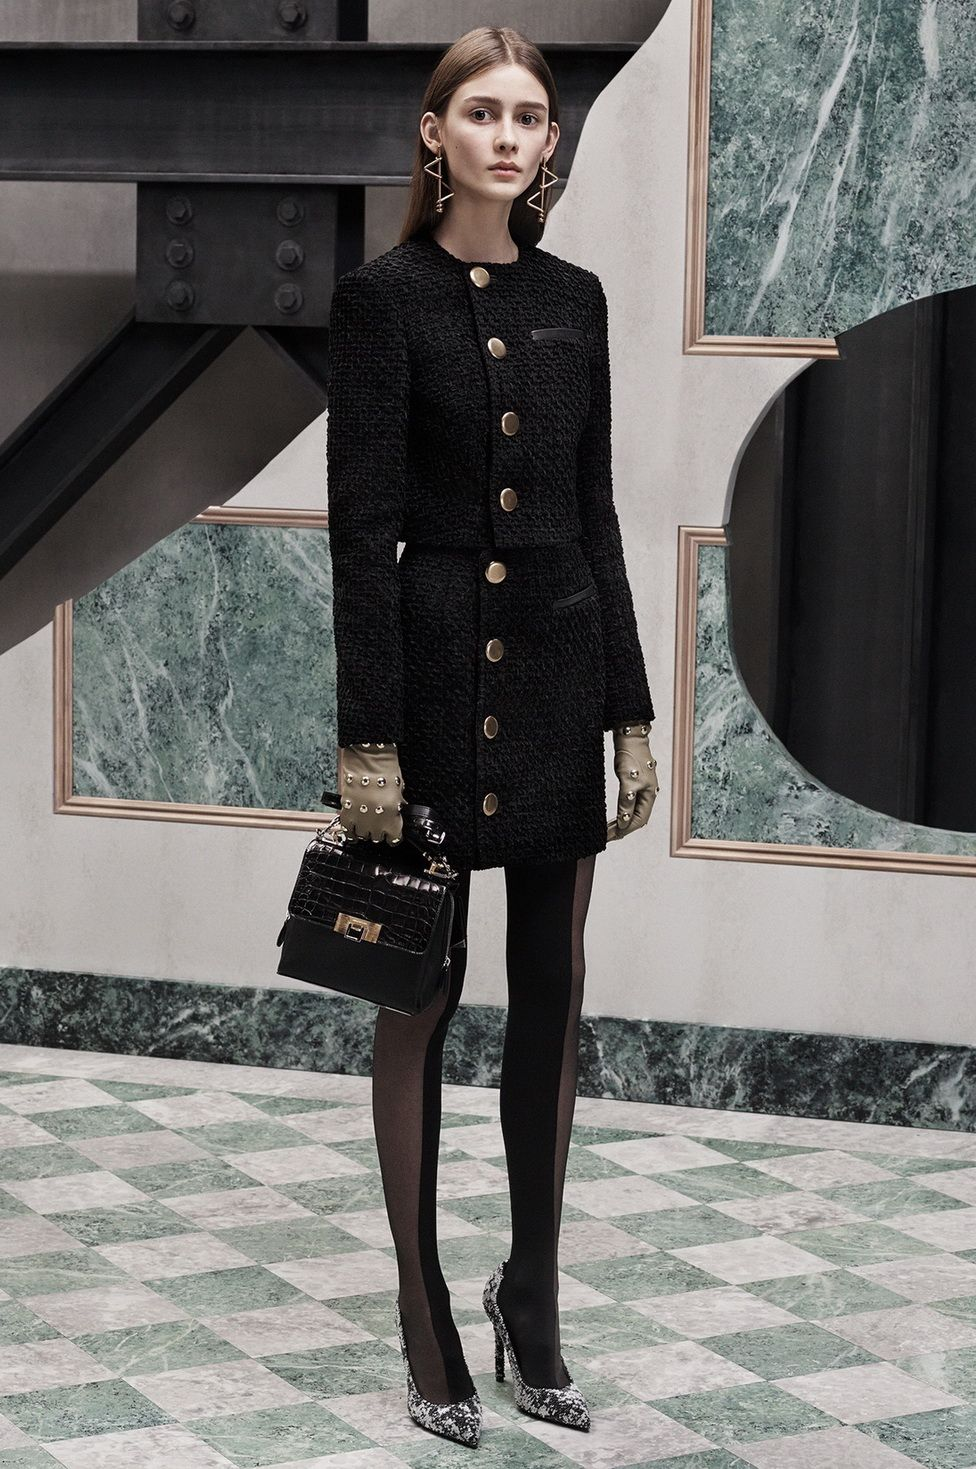 Fashion week Skirt latest suits styles for winter for woman